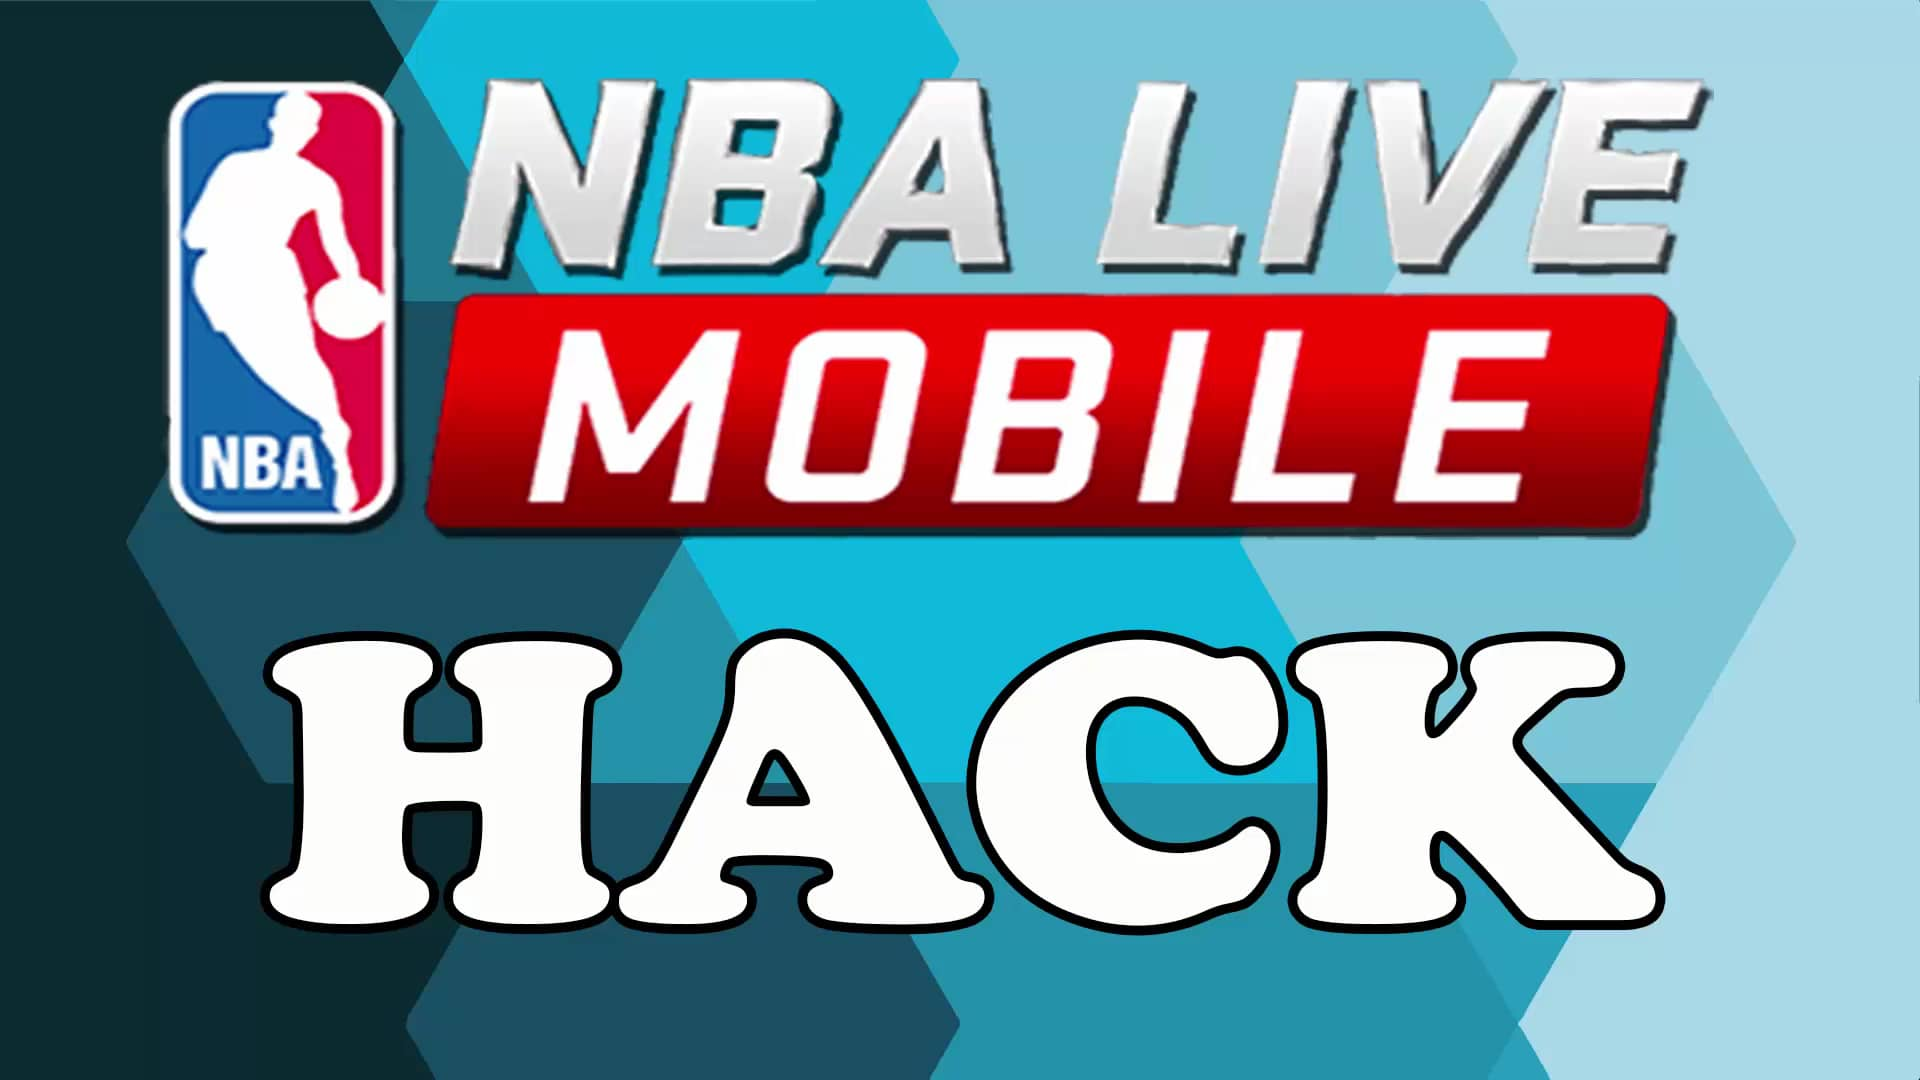 Tycoongamers.com/nba-live-mobile-hack-free-coins-cash